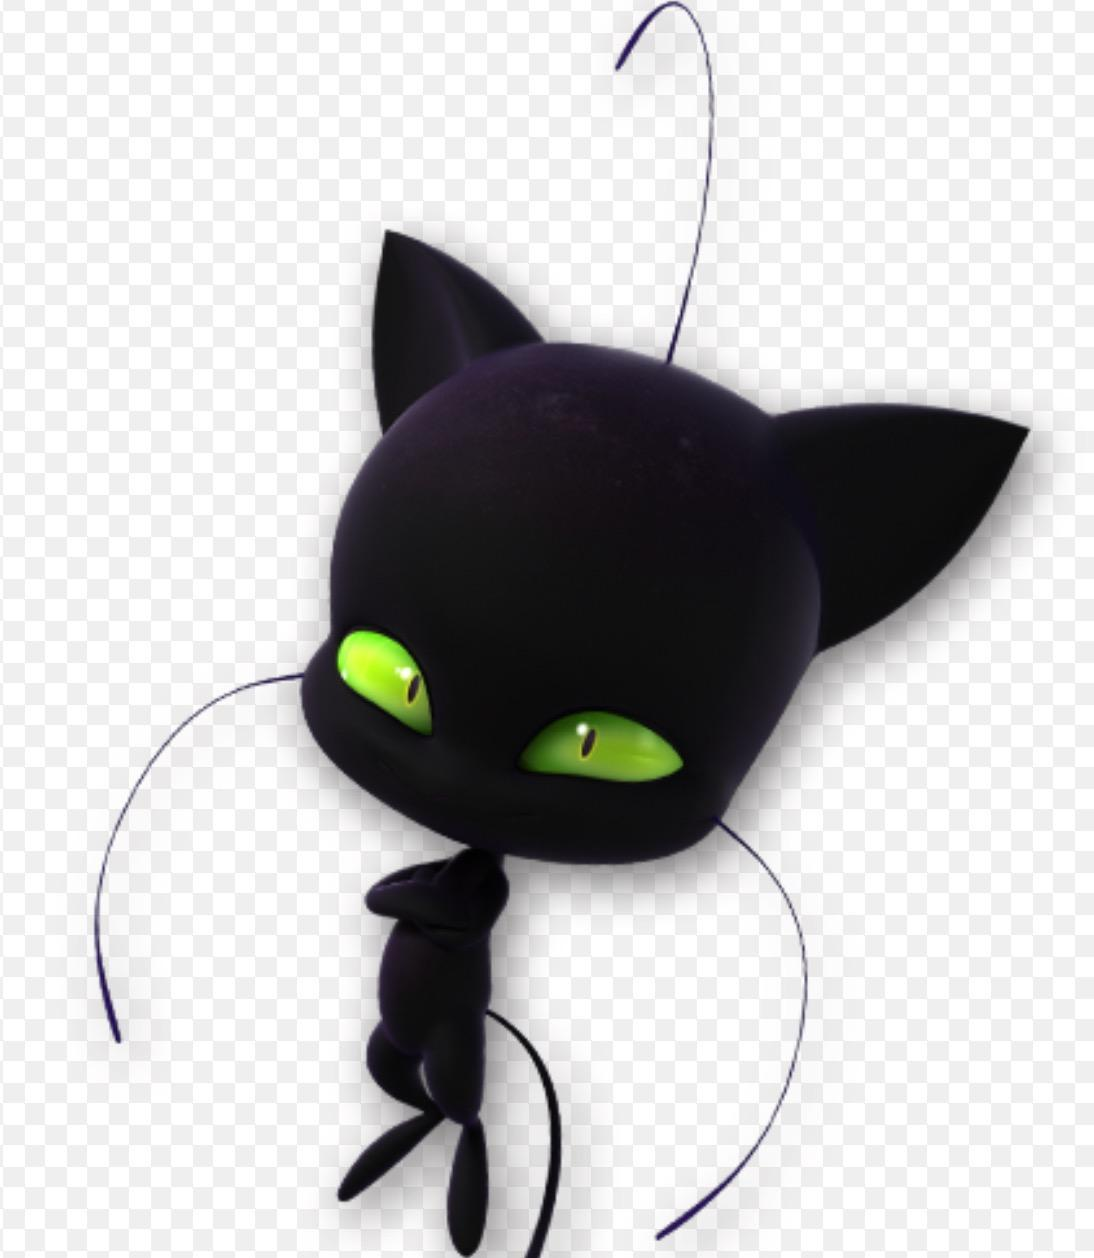 What is the name of Cat Noir's Kwami?